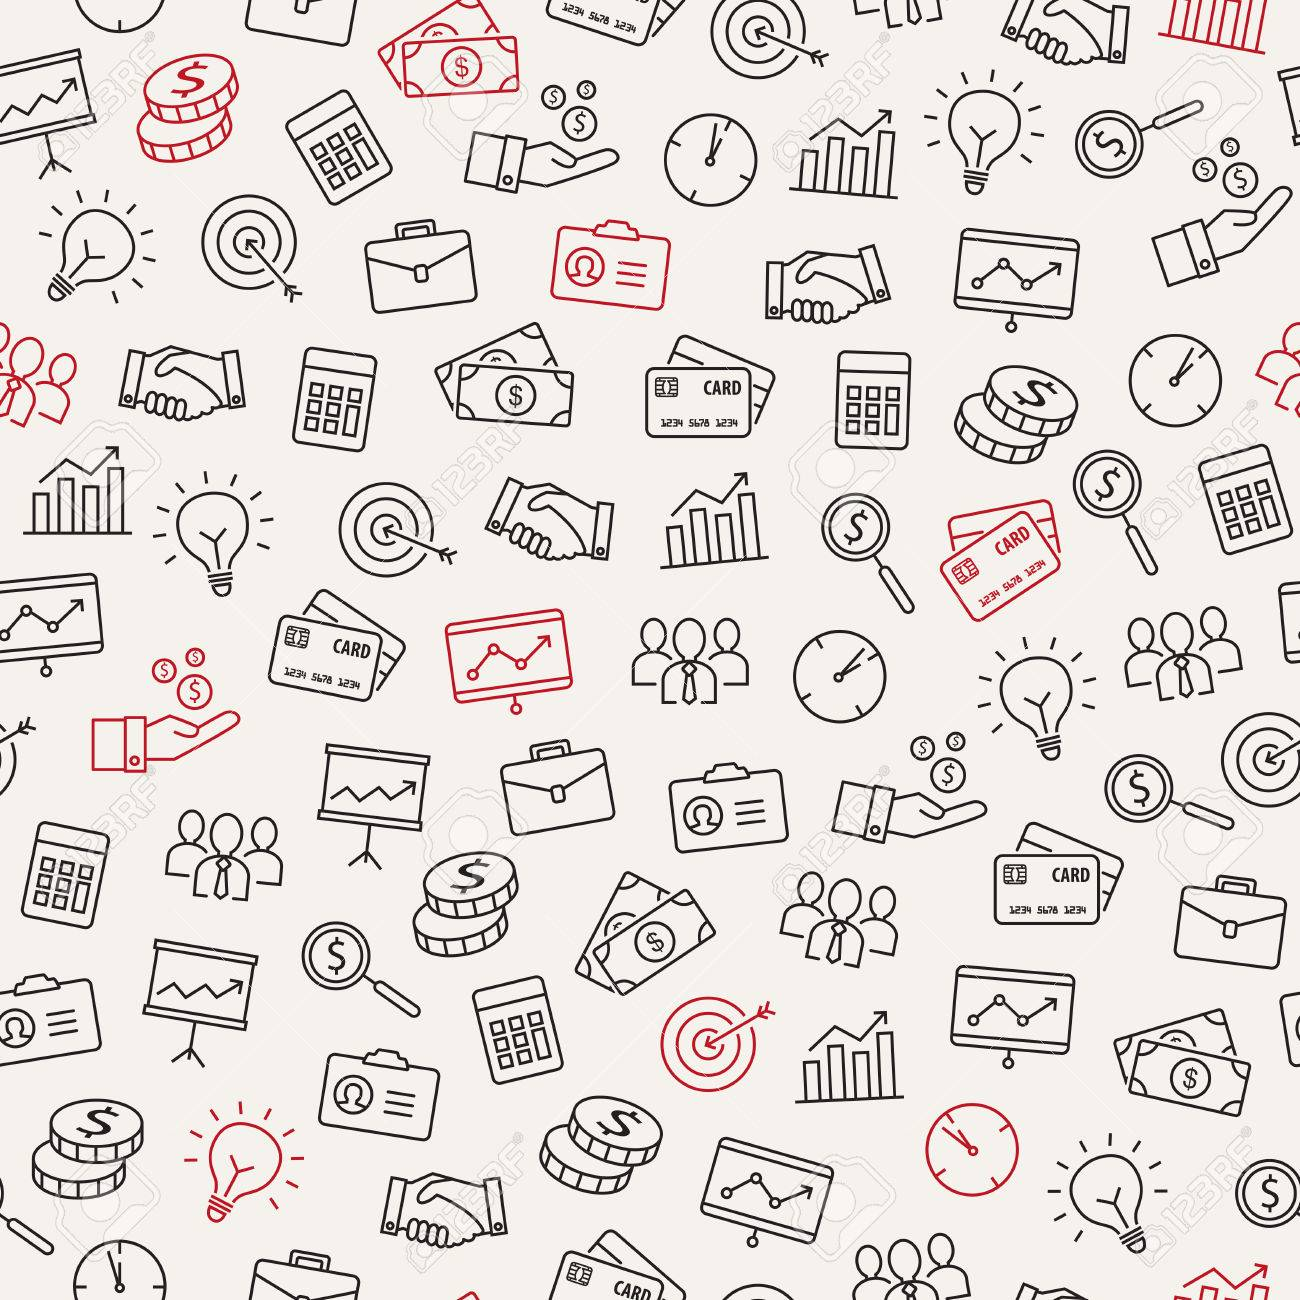 Business icons seamless pattern - can be used to illustrate management, productivity, success, financial growth. - 50372232